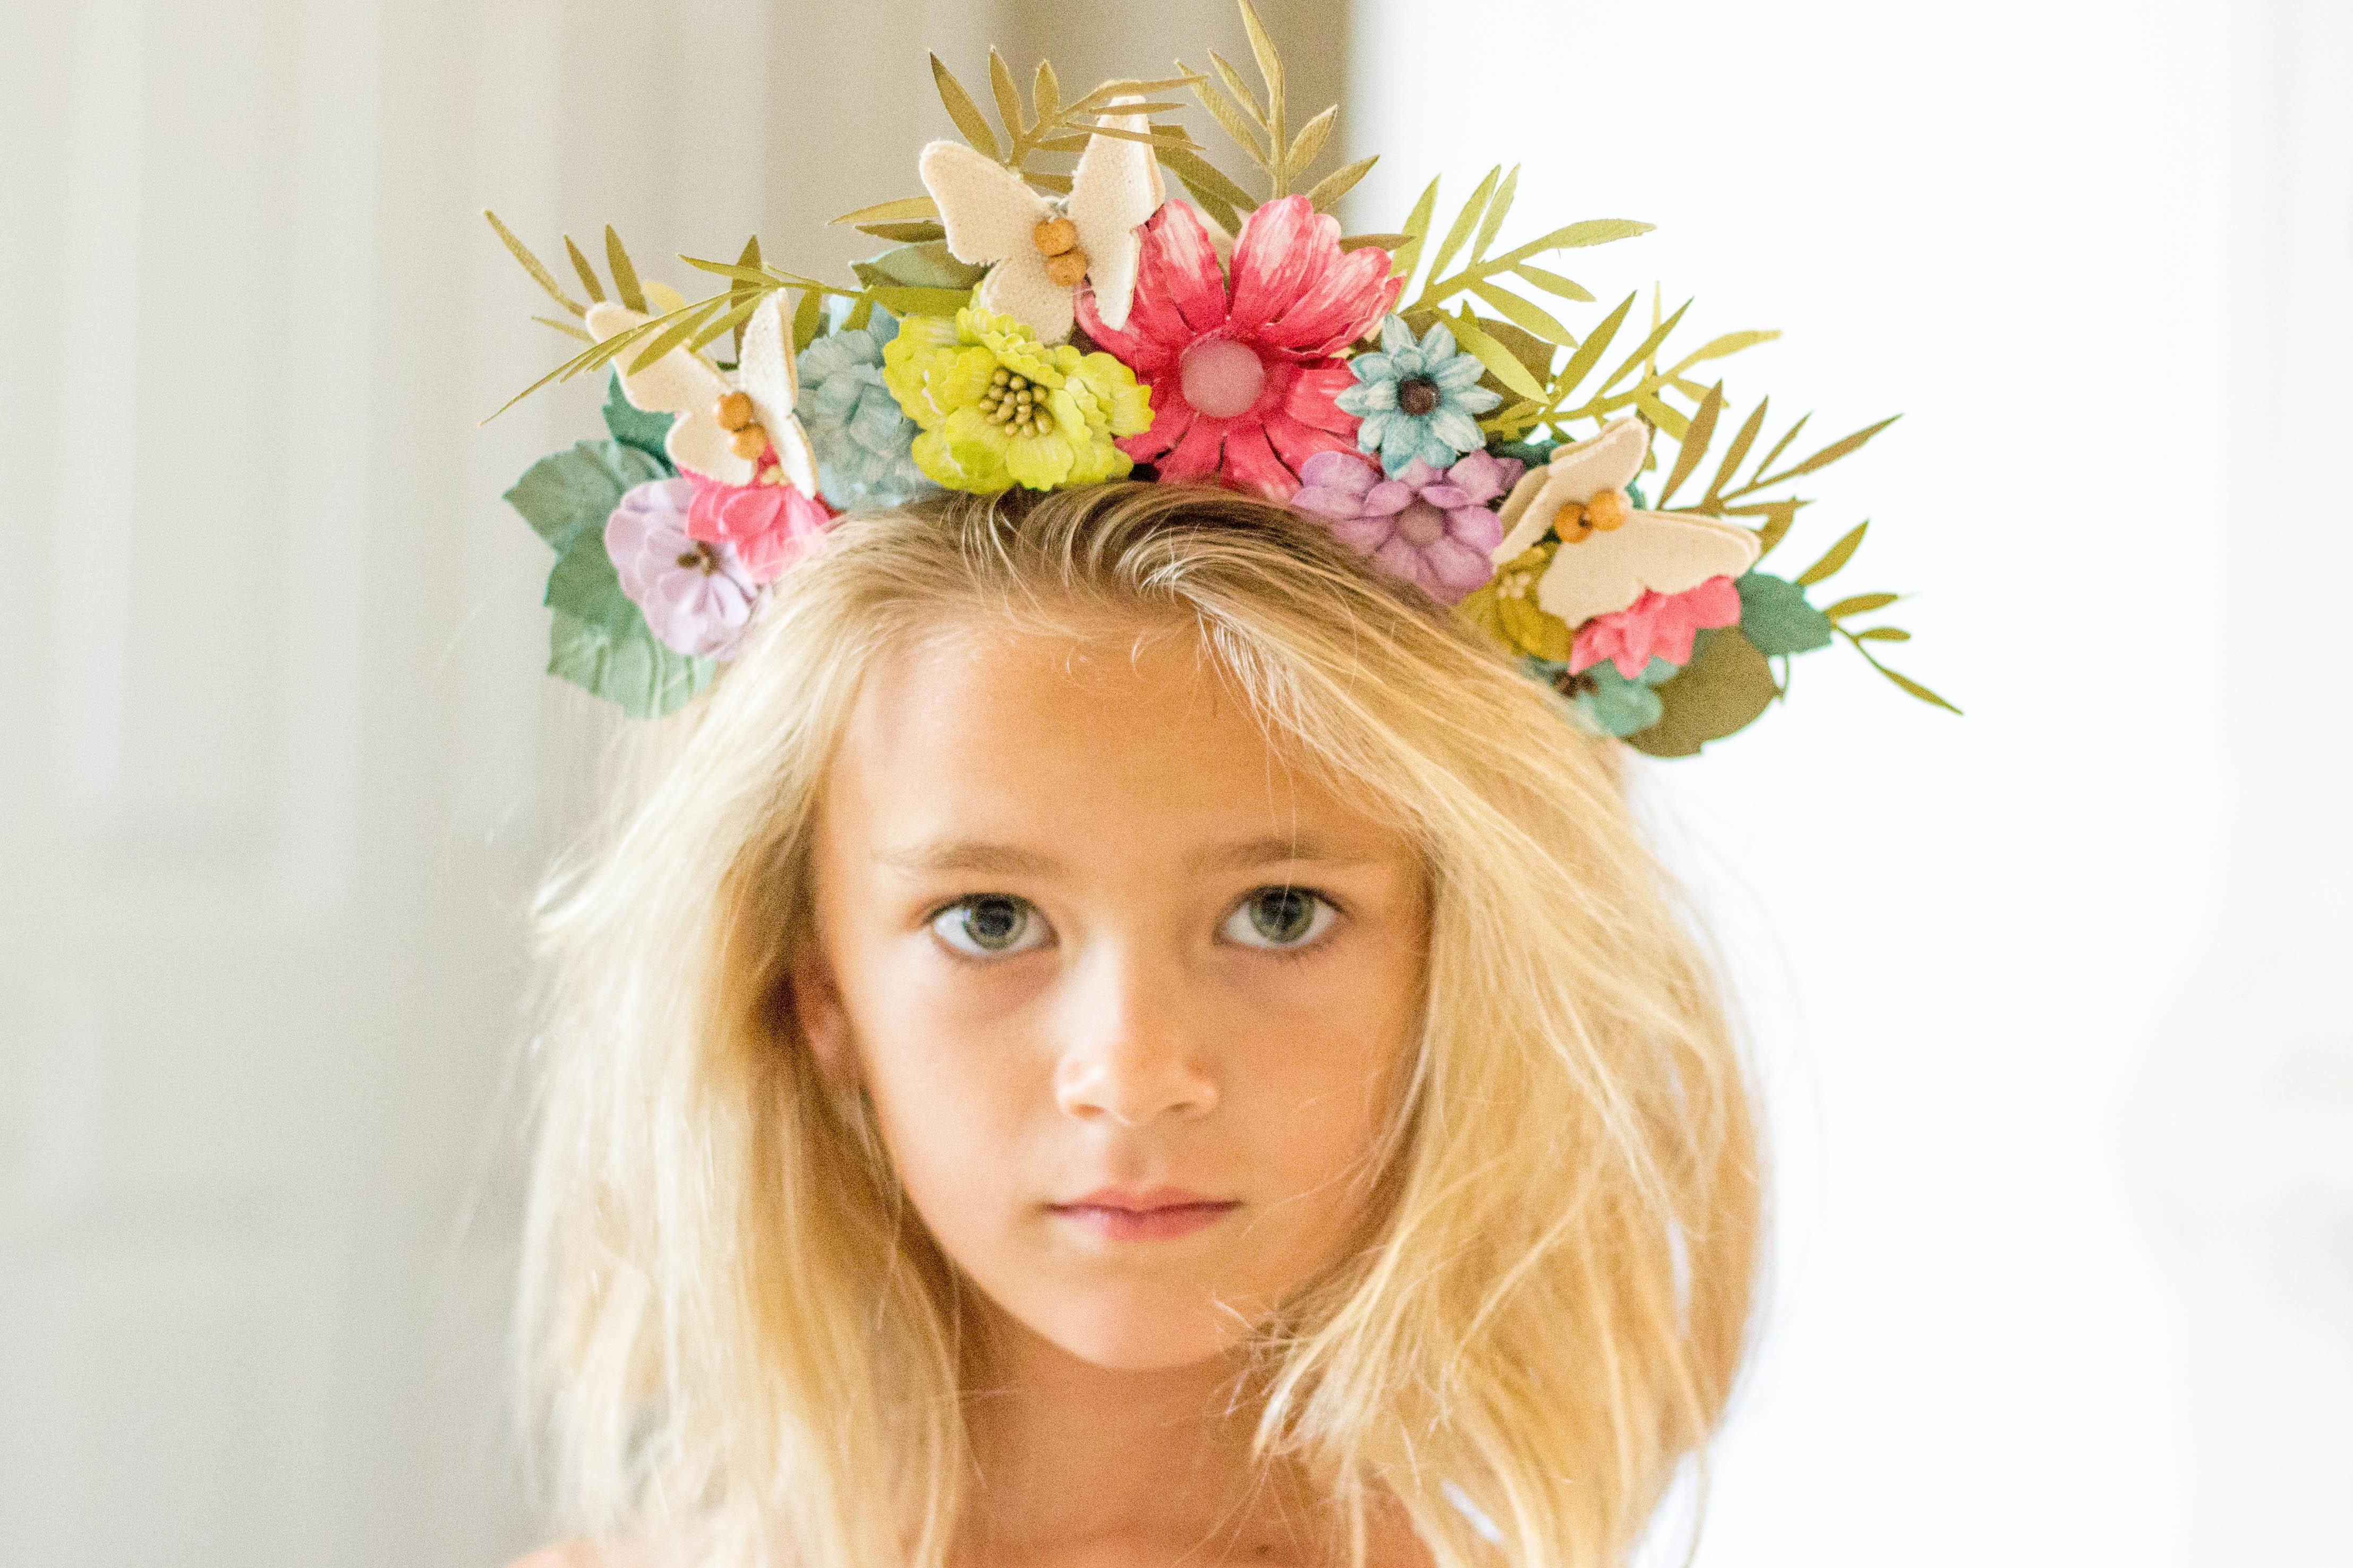 37 Breathtaking Diy Summer Flower Crown That You Re Going To Love Trends For 2020 Diverse Designs Decoratorist